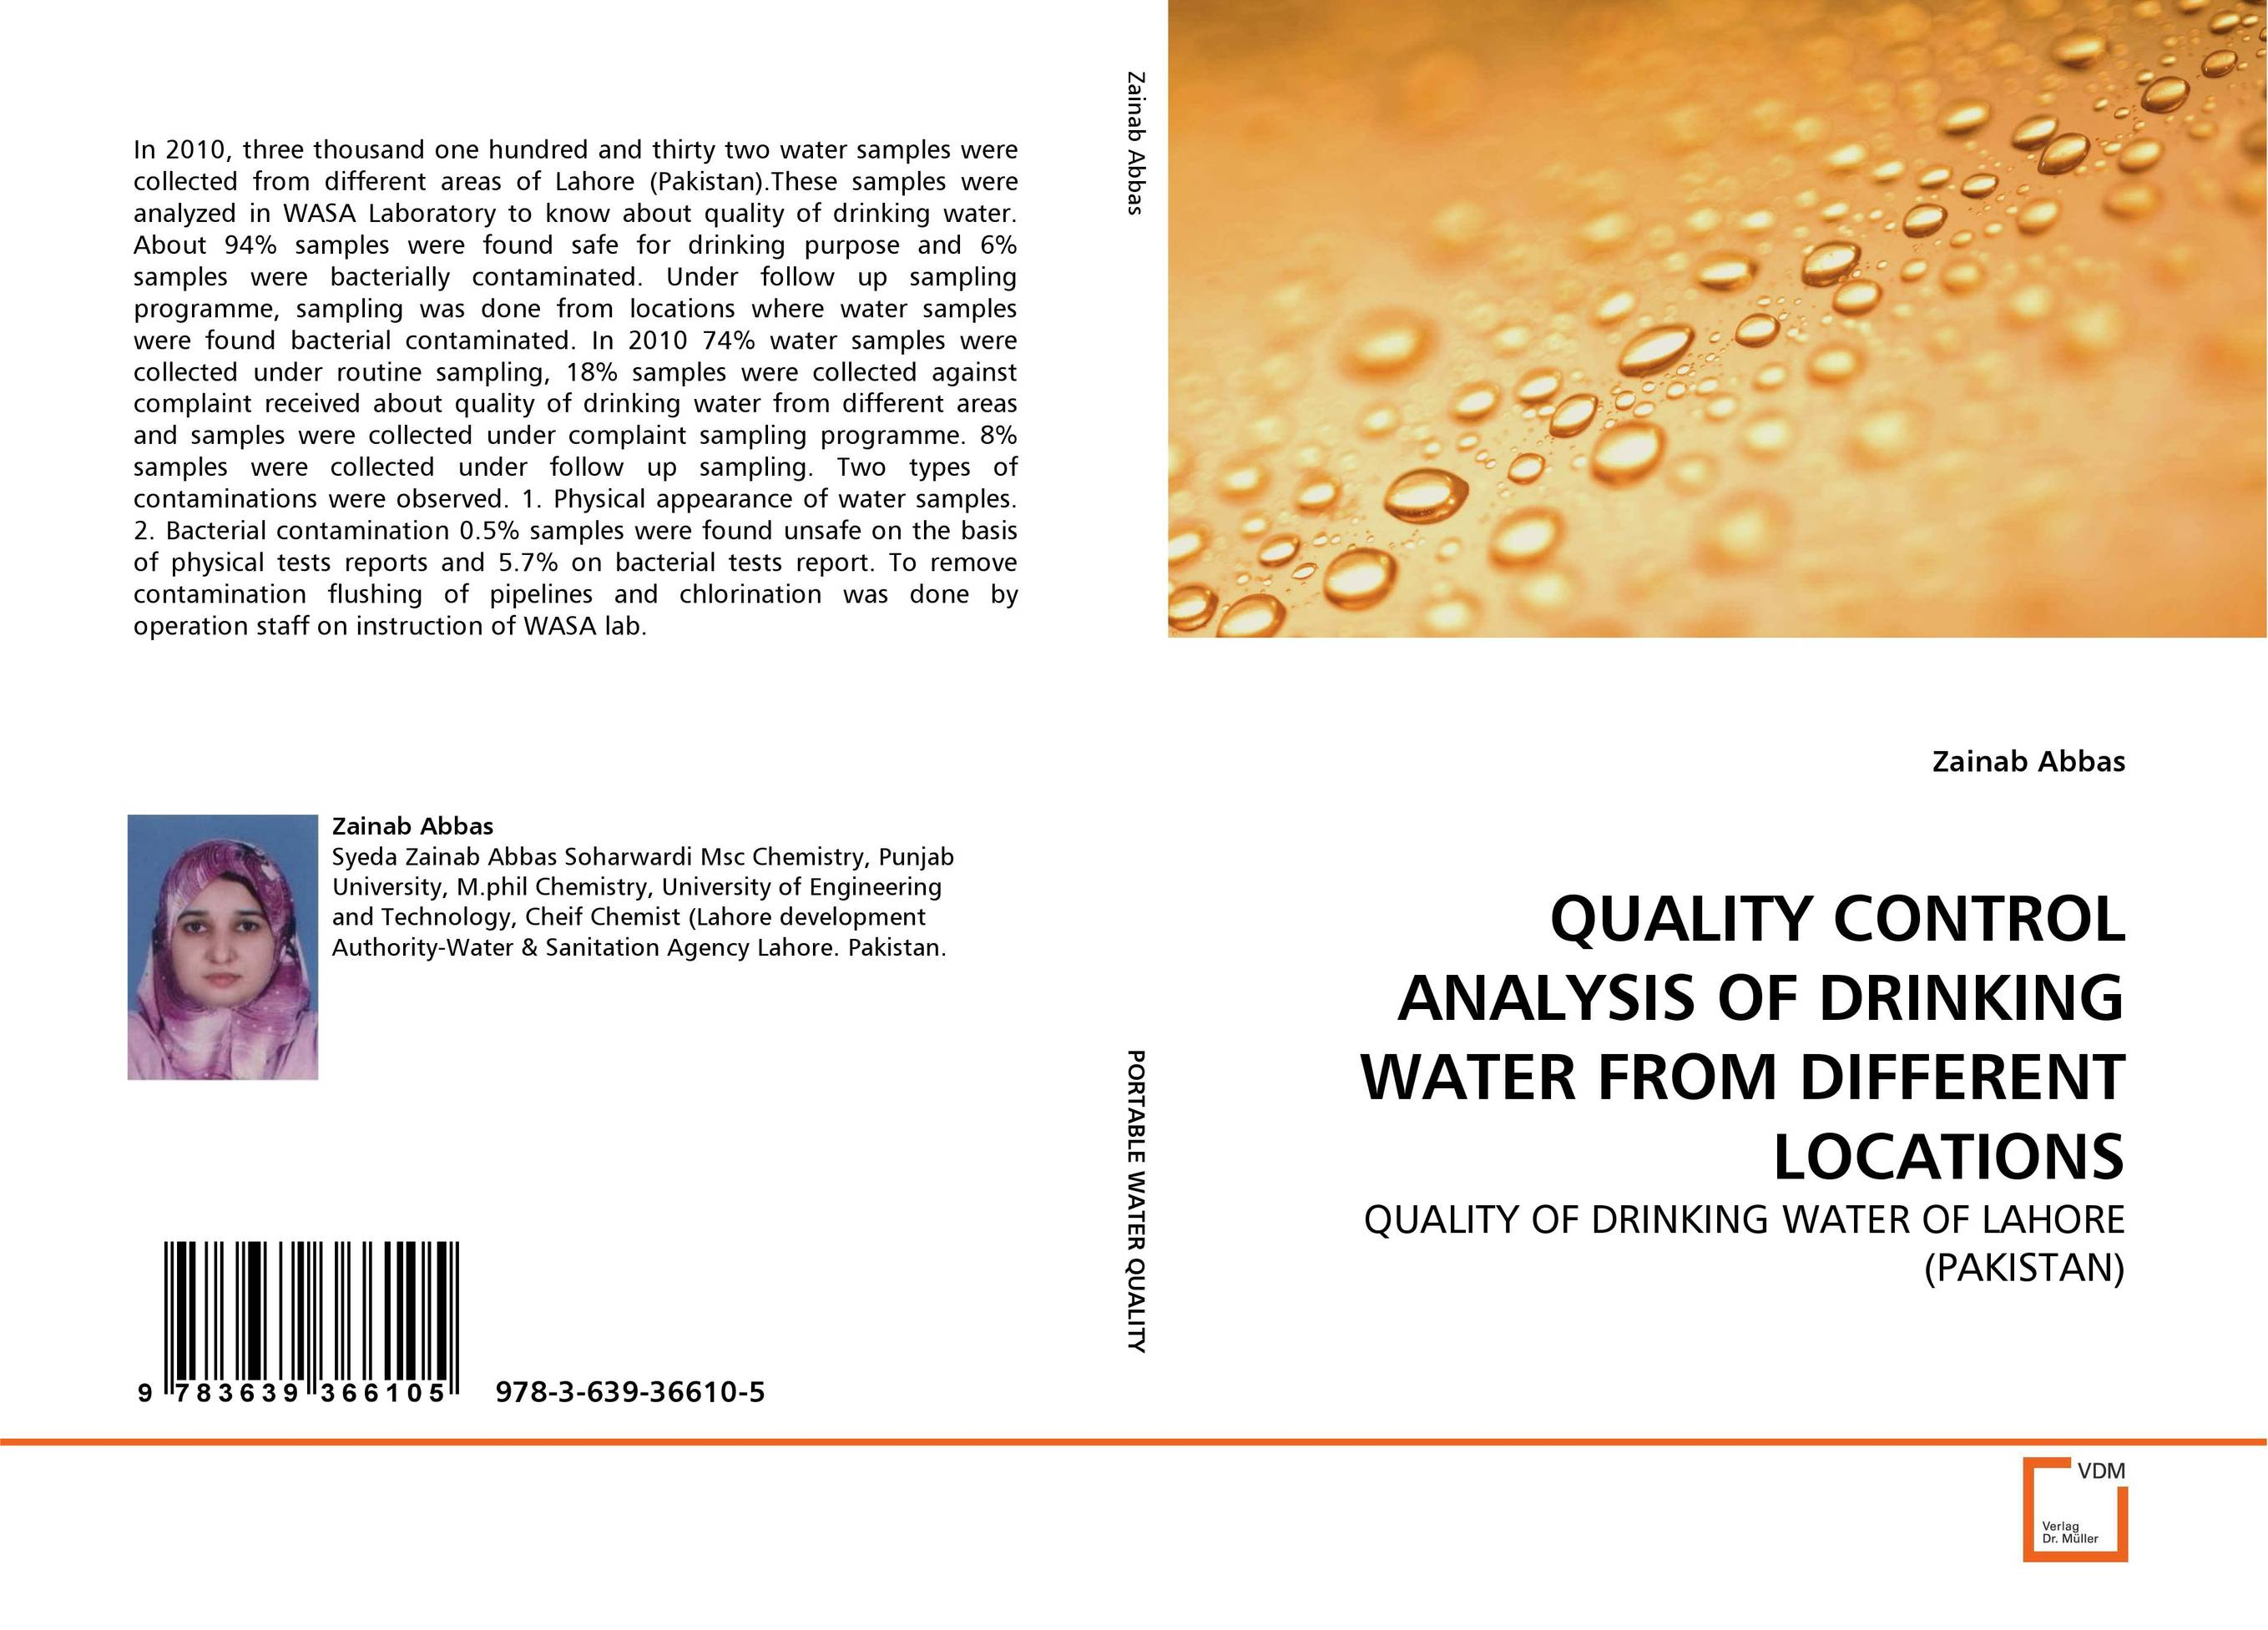 QUALITY CONTROL ANALYSIS OF DRINKING WATER FROM DIFFERENT LOCATIONS analysis of bacterial colonization on gypsum casts